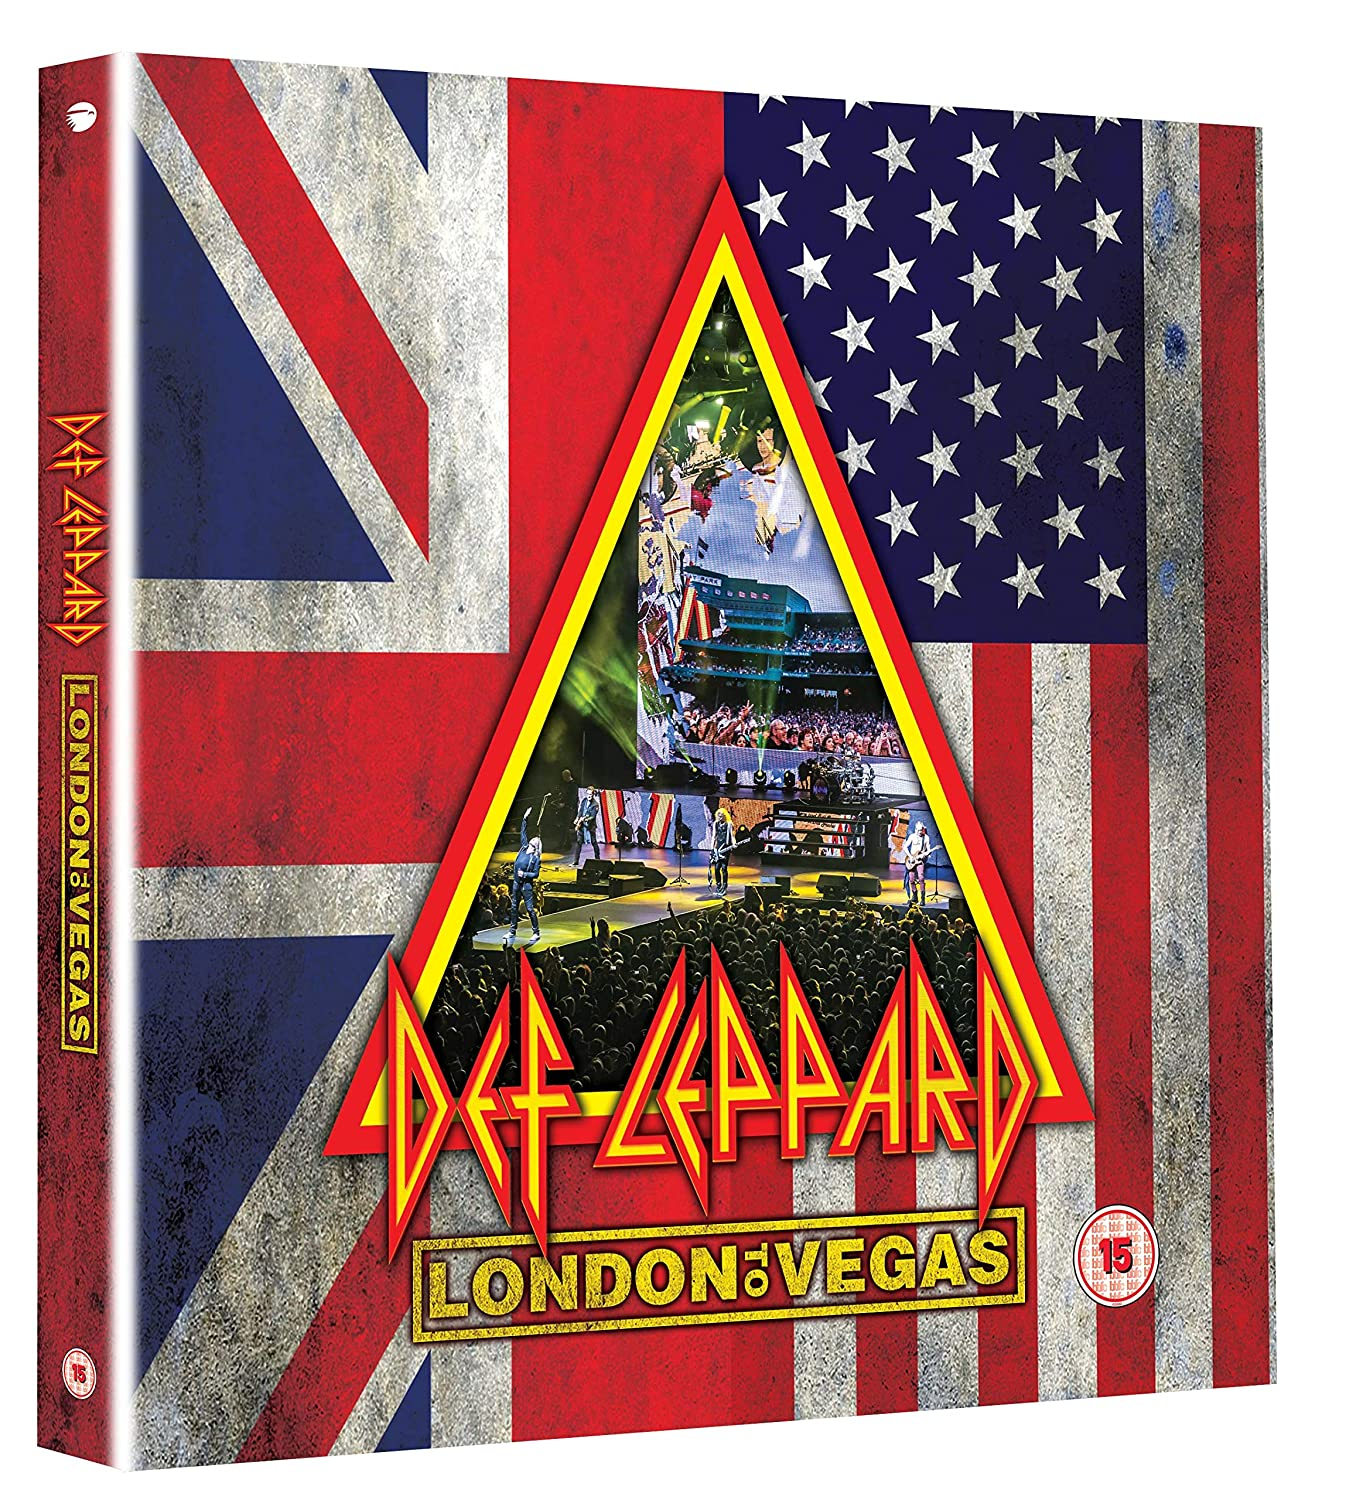 CD Shop - DEF LEPPARD LONDON TO VEGAS/LTD/4CD